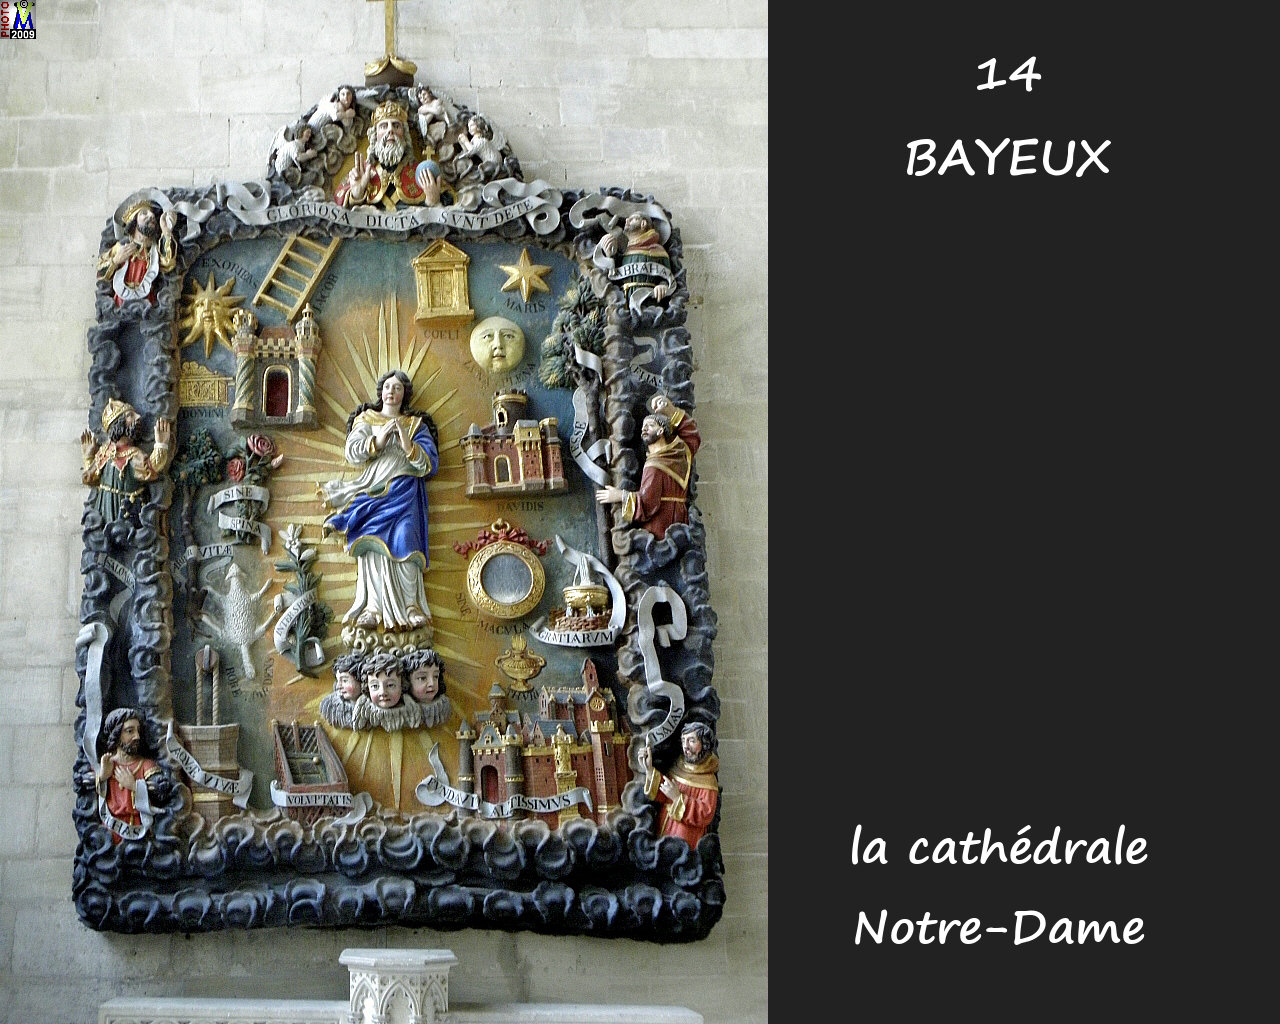 14BAYEUX_cathedrale_266.jpg